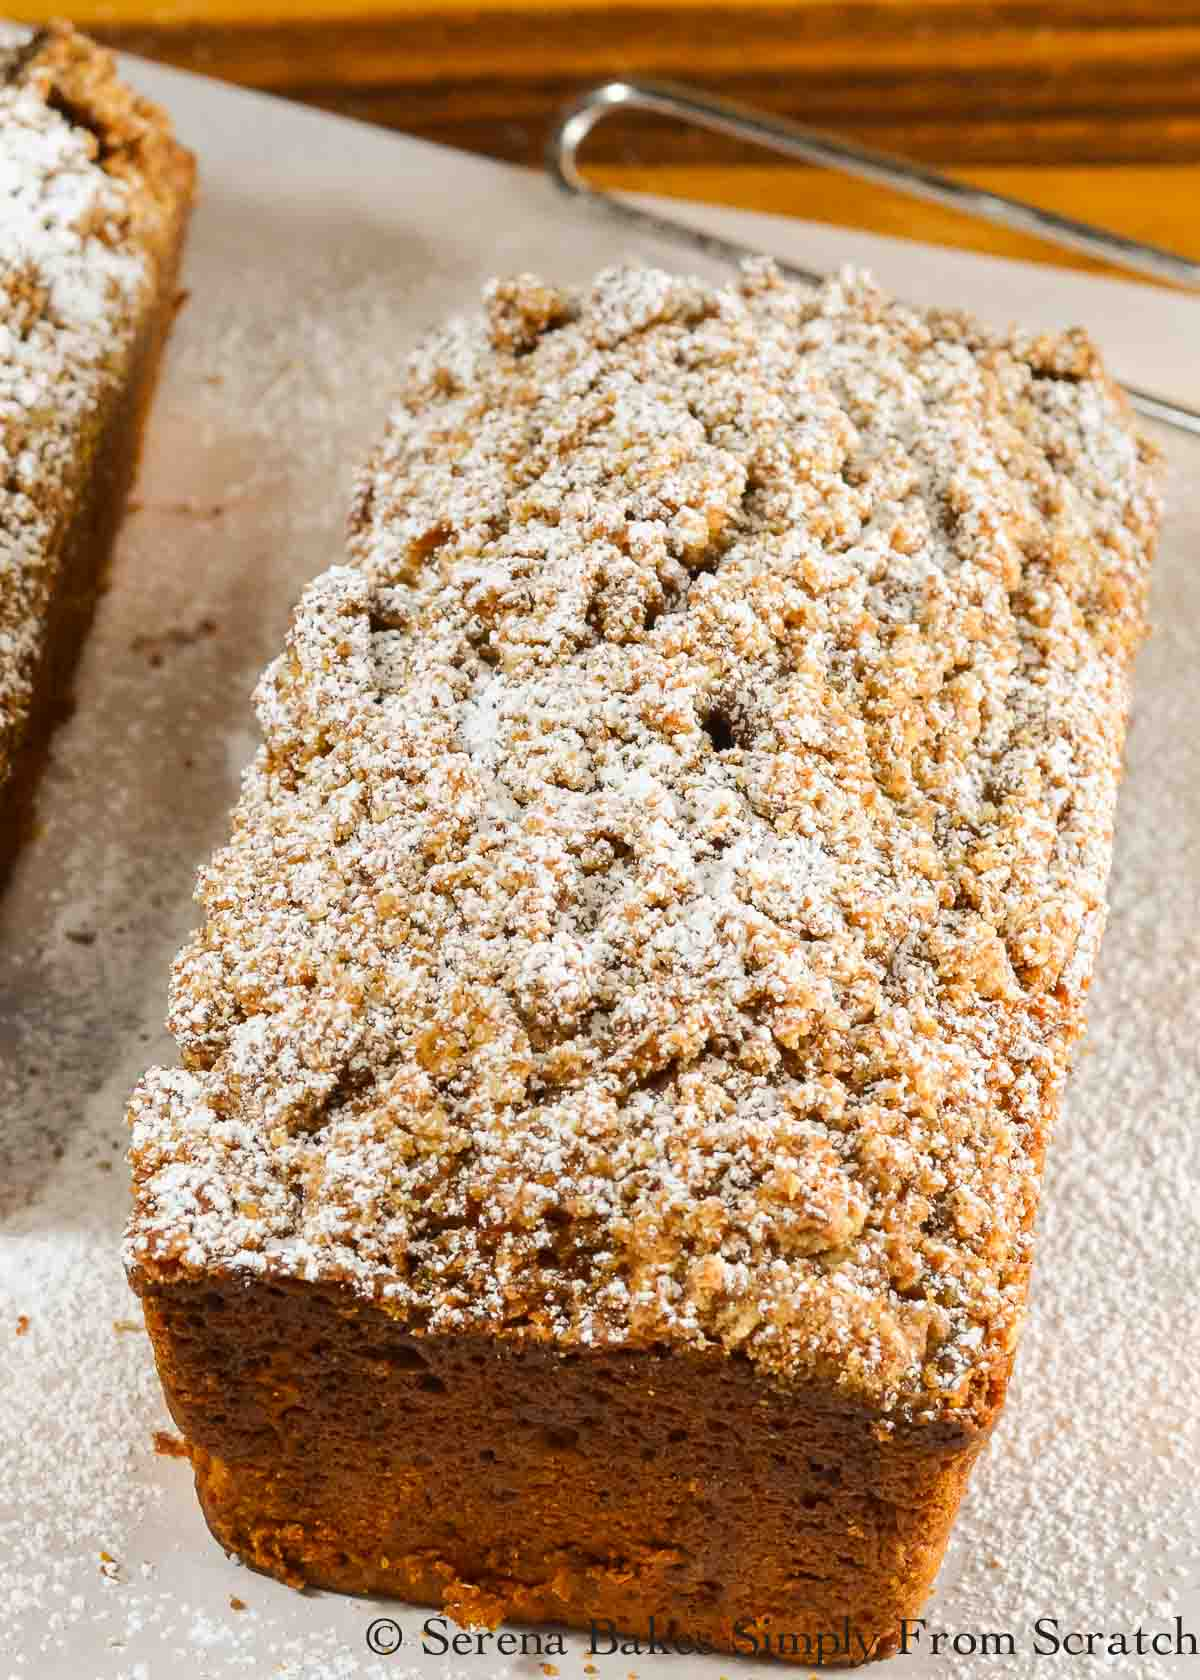 Pumpkin Bread with Streusel lightly dusted with powdered sugar on a piece of parchment paper.